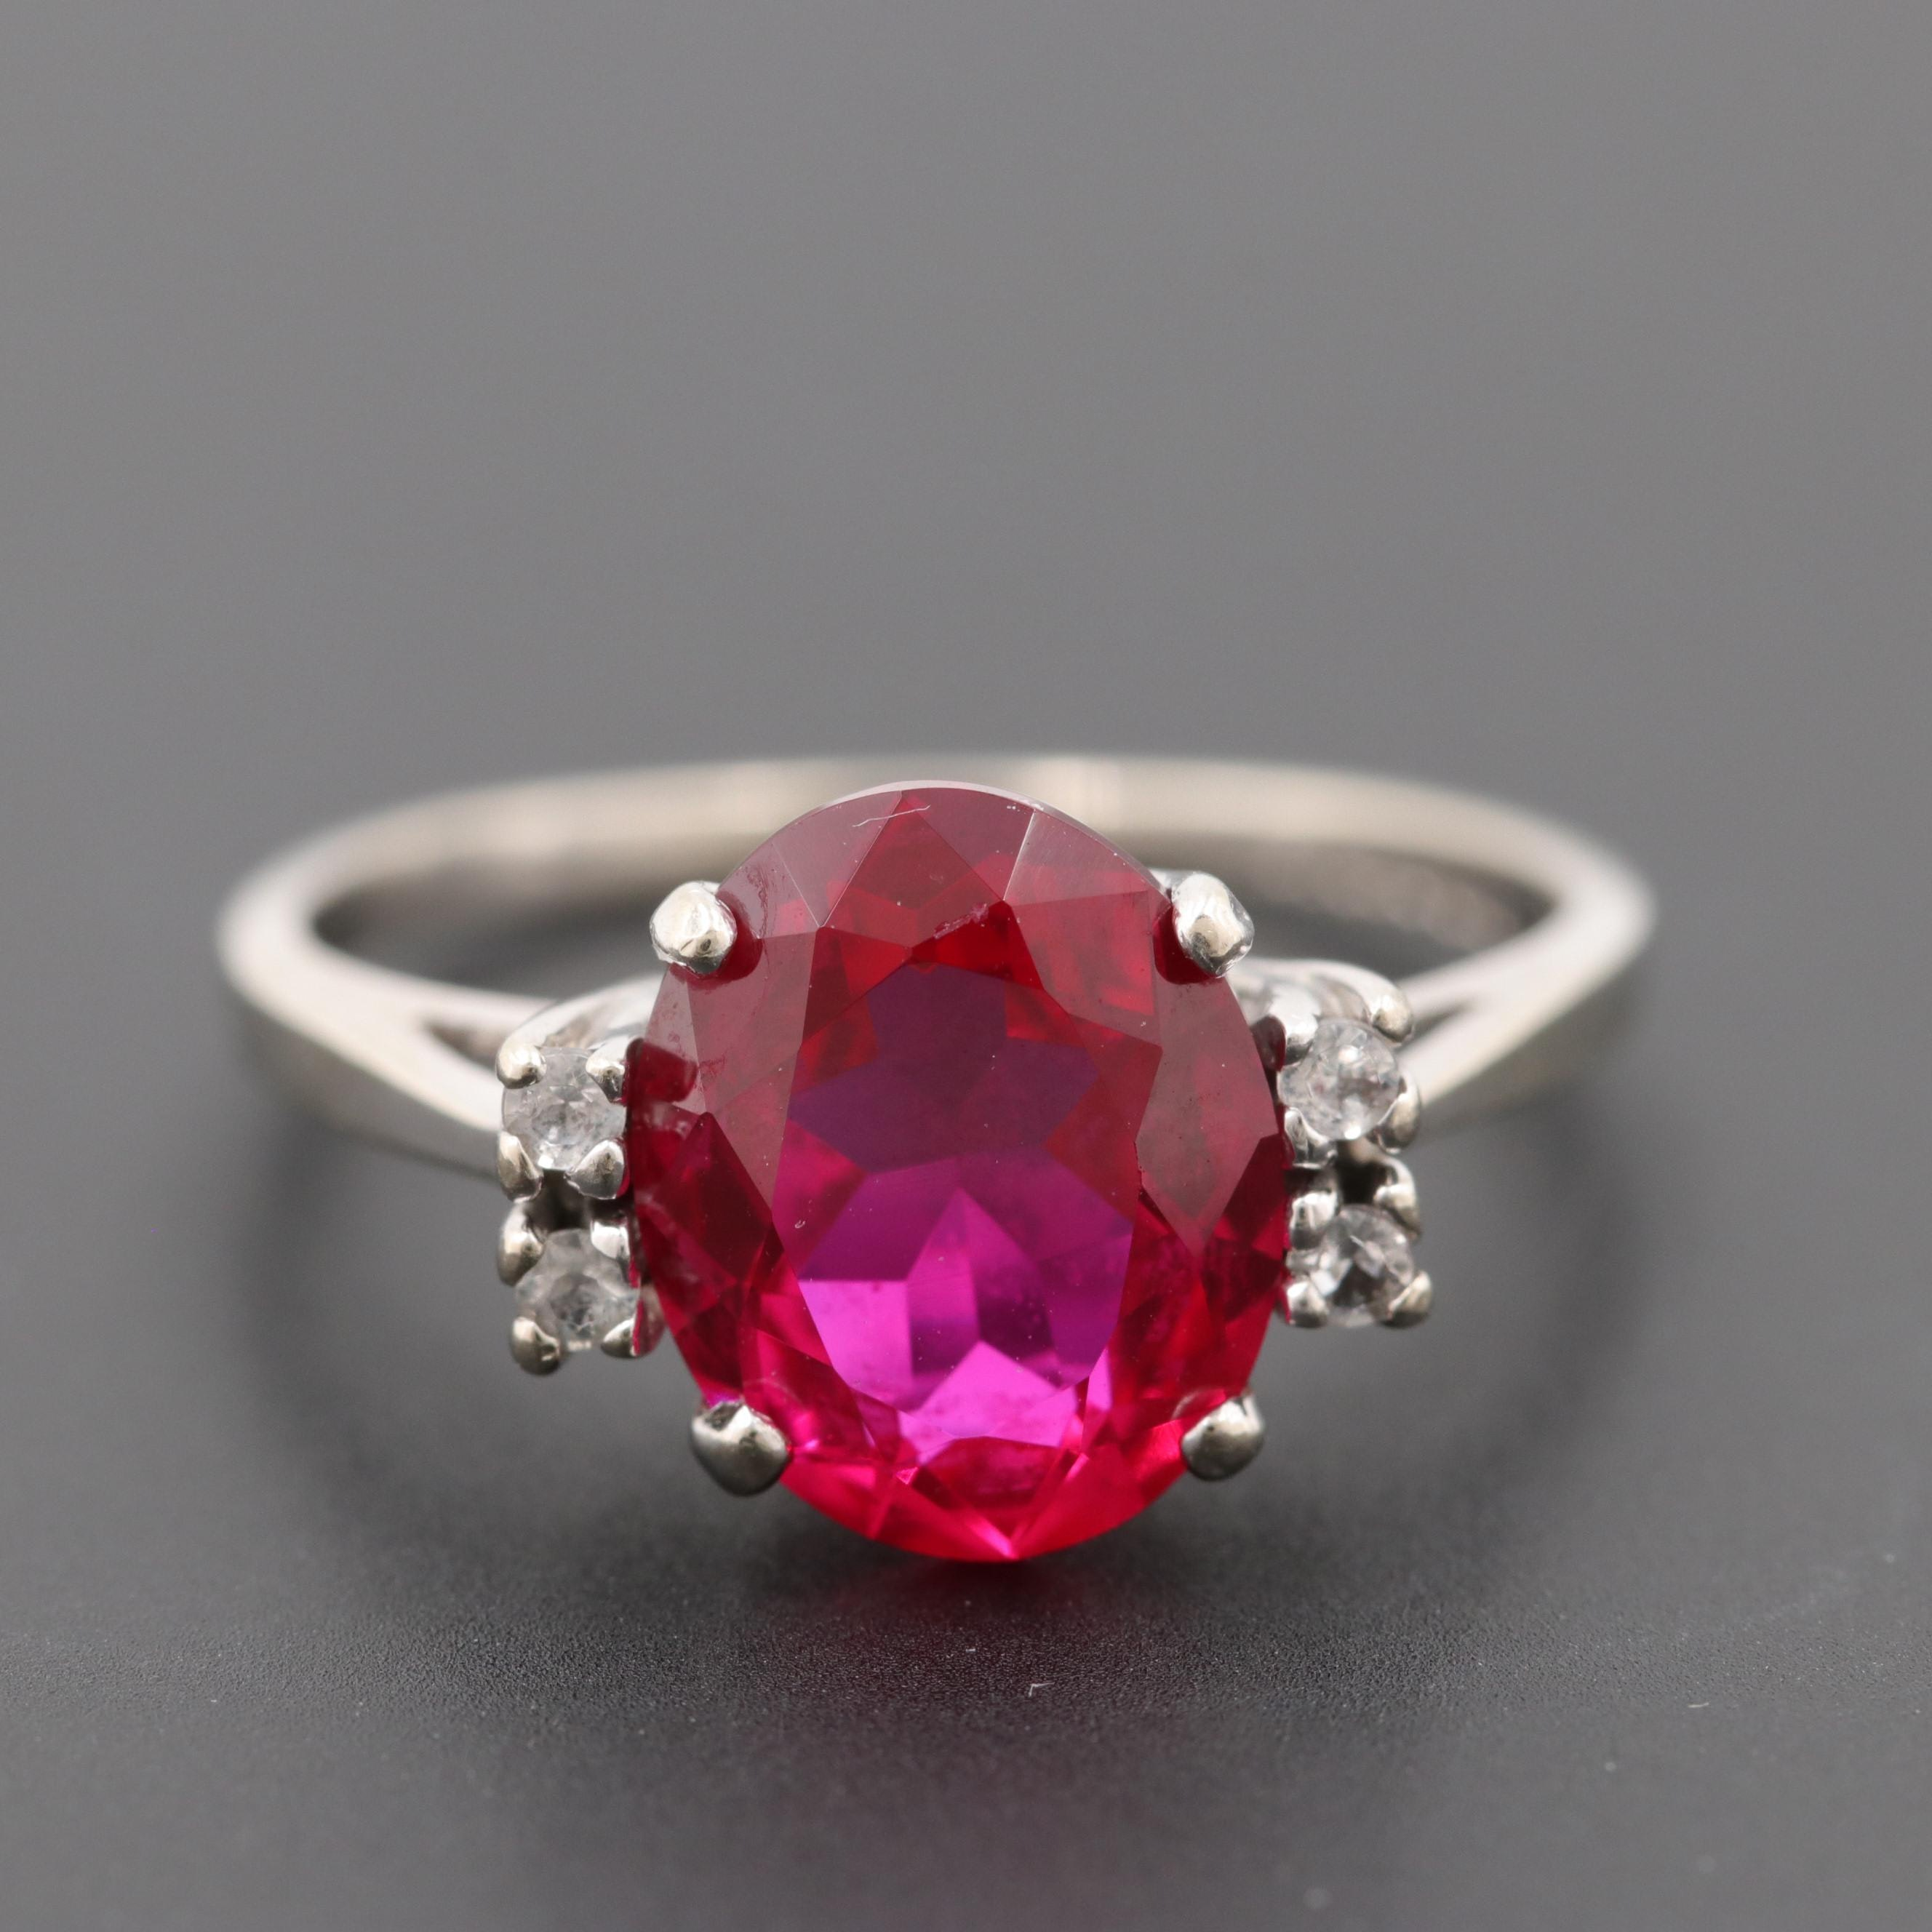 10K White Gold Synthetic Ruby and Synthetic Spinel Ring